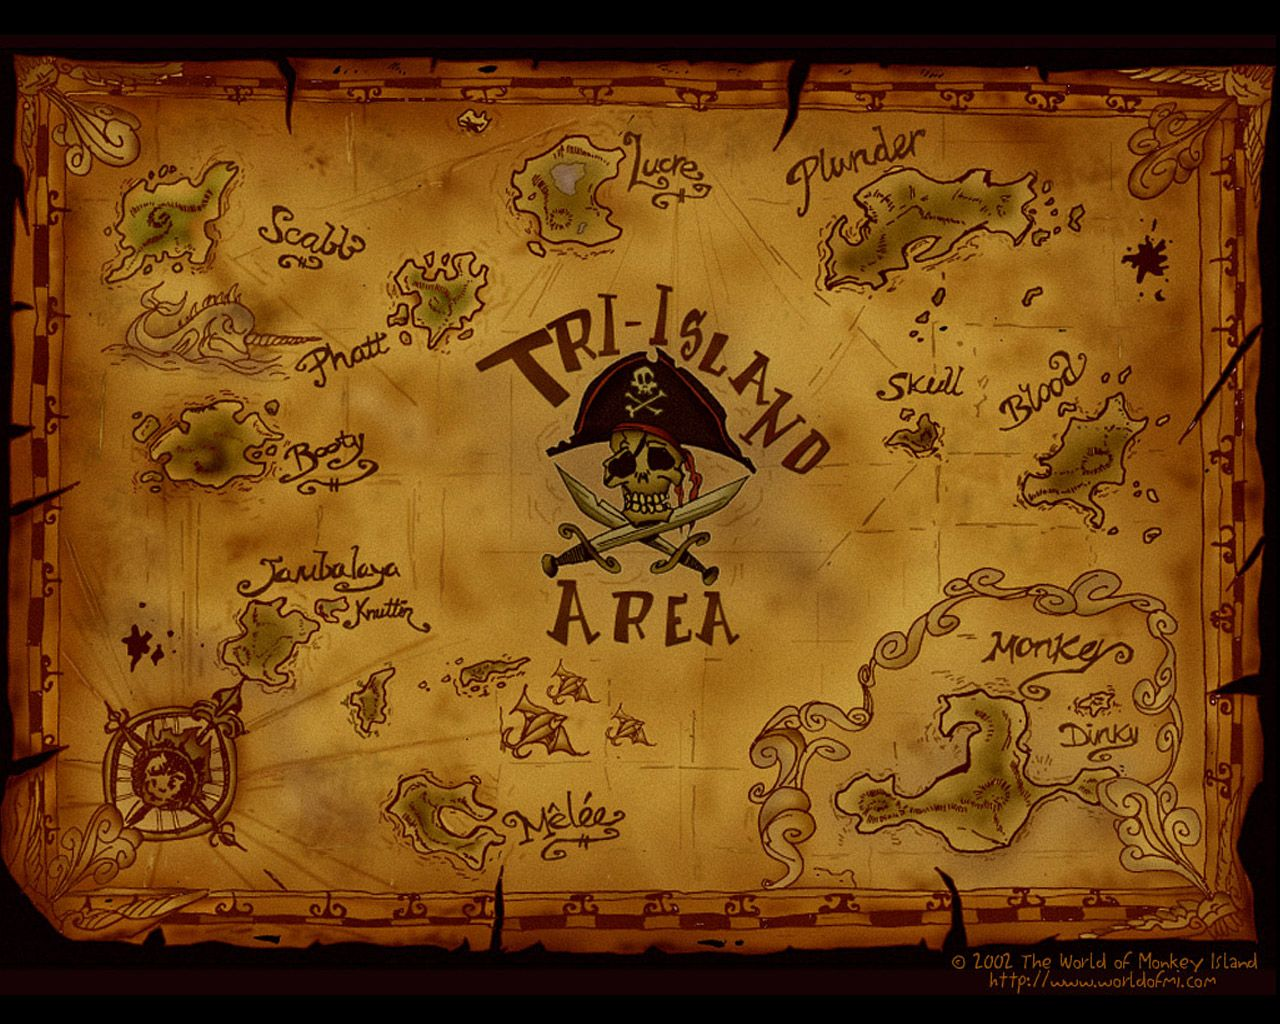 Monkey island 2 lechuck s revenge concept art the international - Map Of The Tri Island Area Harmonizing All The Maps Of It From The Different